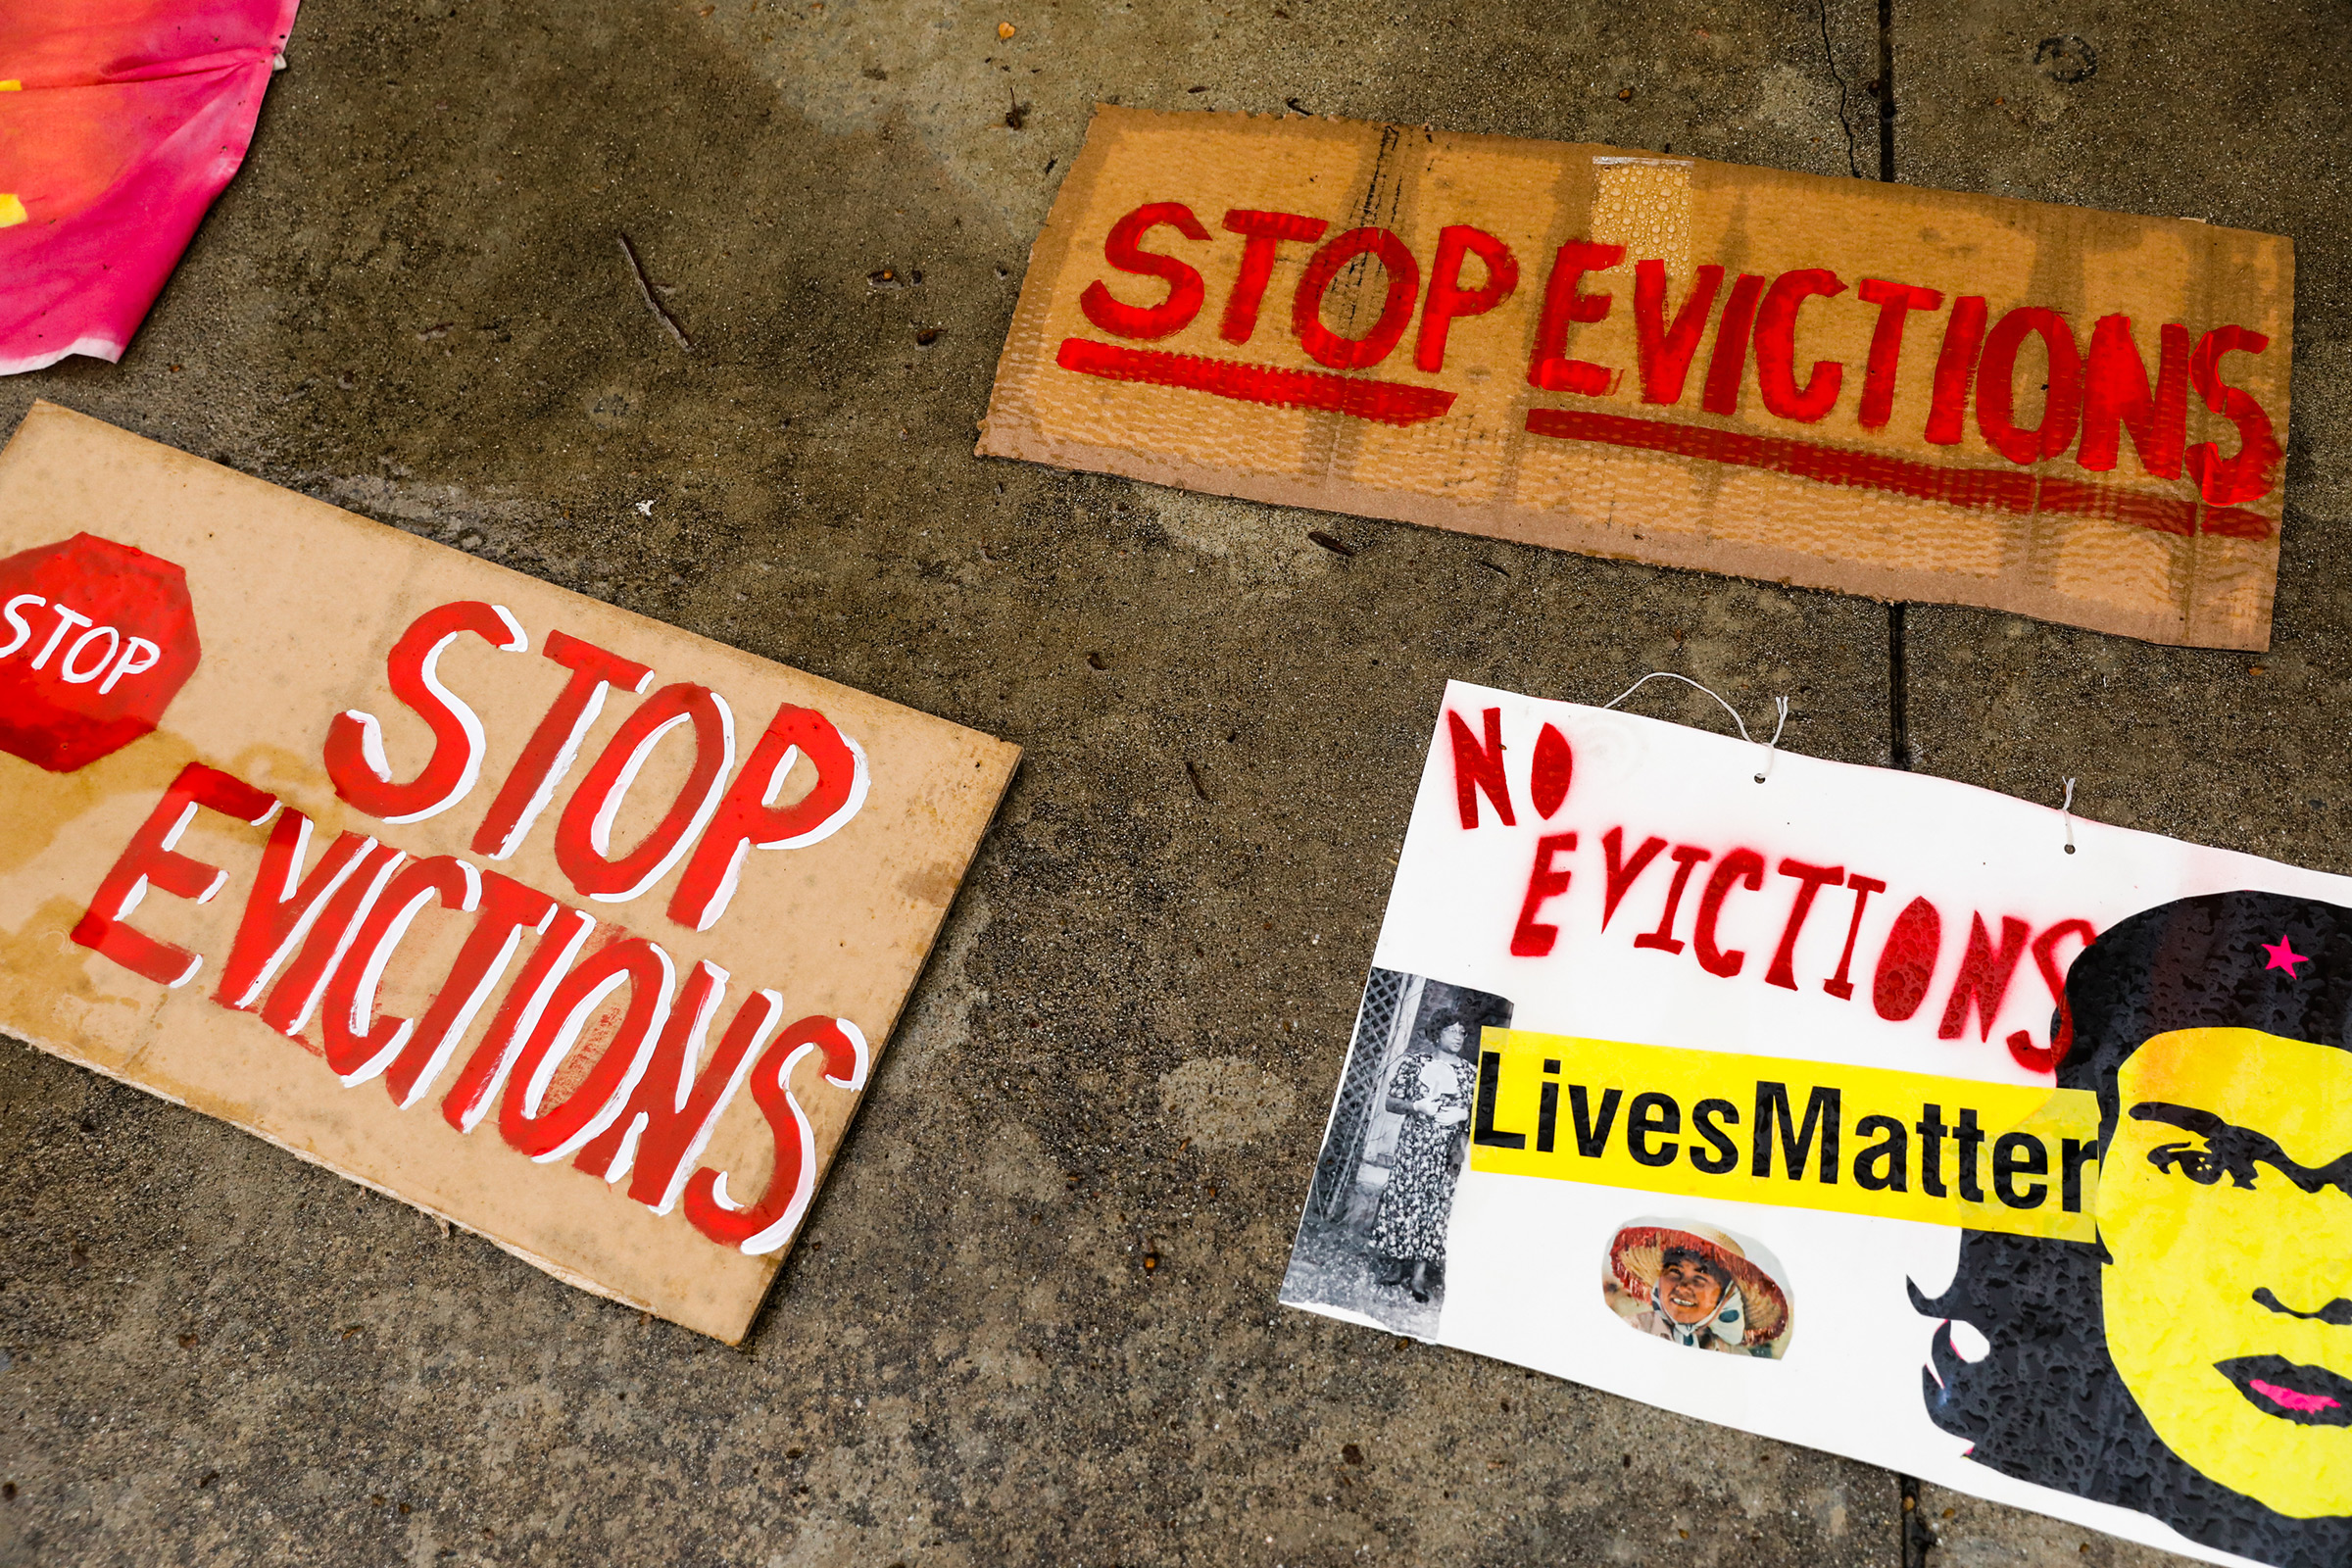 Signage lays on the ground during a protest outside the Santa Clara County Courthouse in San Jose to halt eviction proceedings from taking place on Jan. 27. Although rent moratoriums were instituted to help people who lost their jobs due to coronavirus shutdowns, certain types of eviction actions are still going forward.